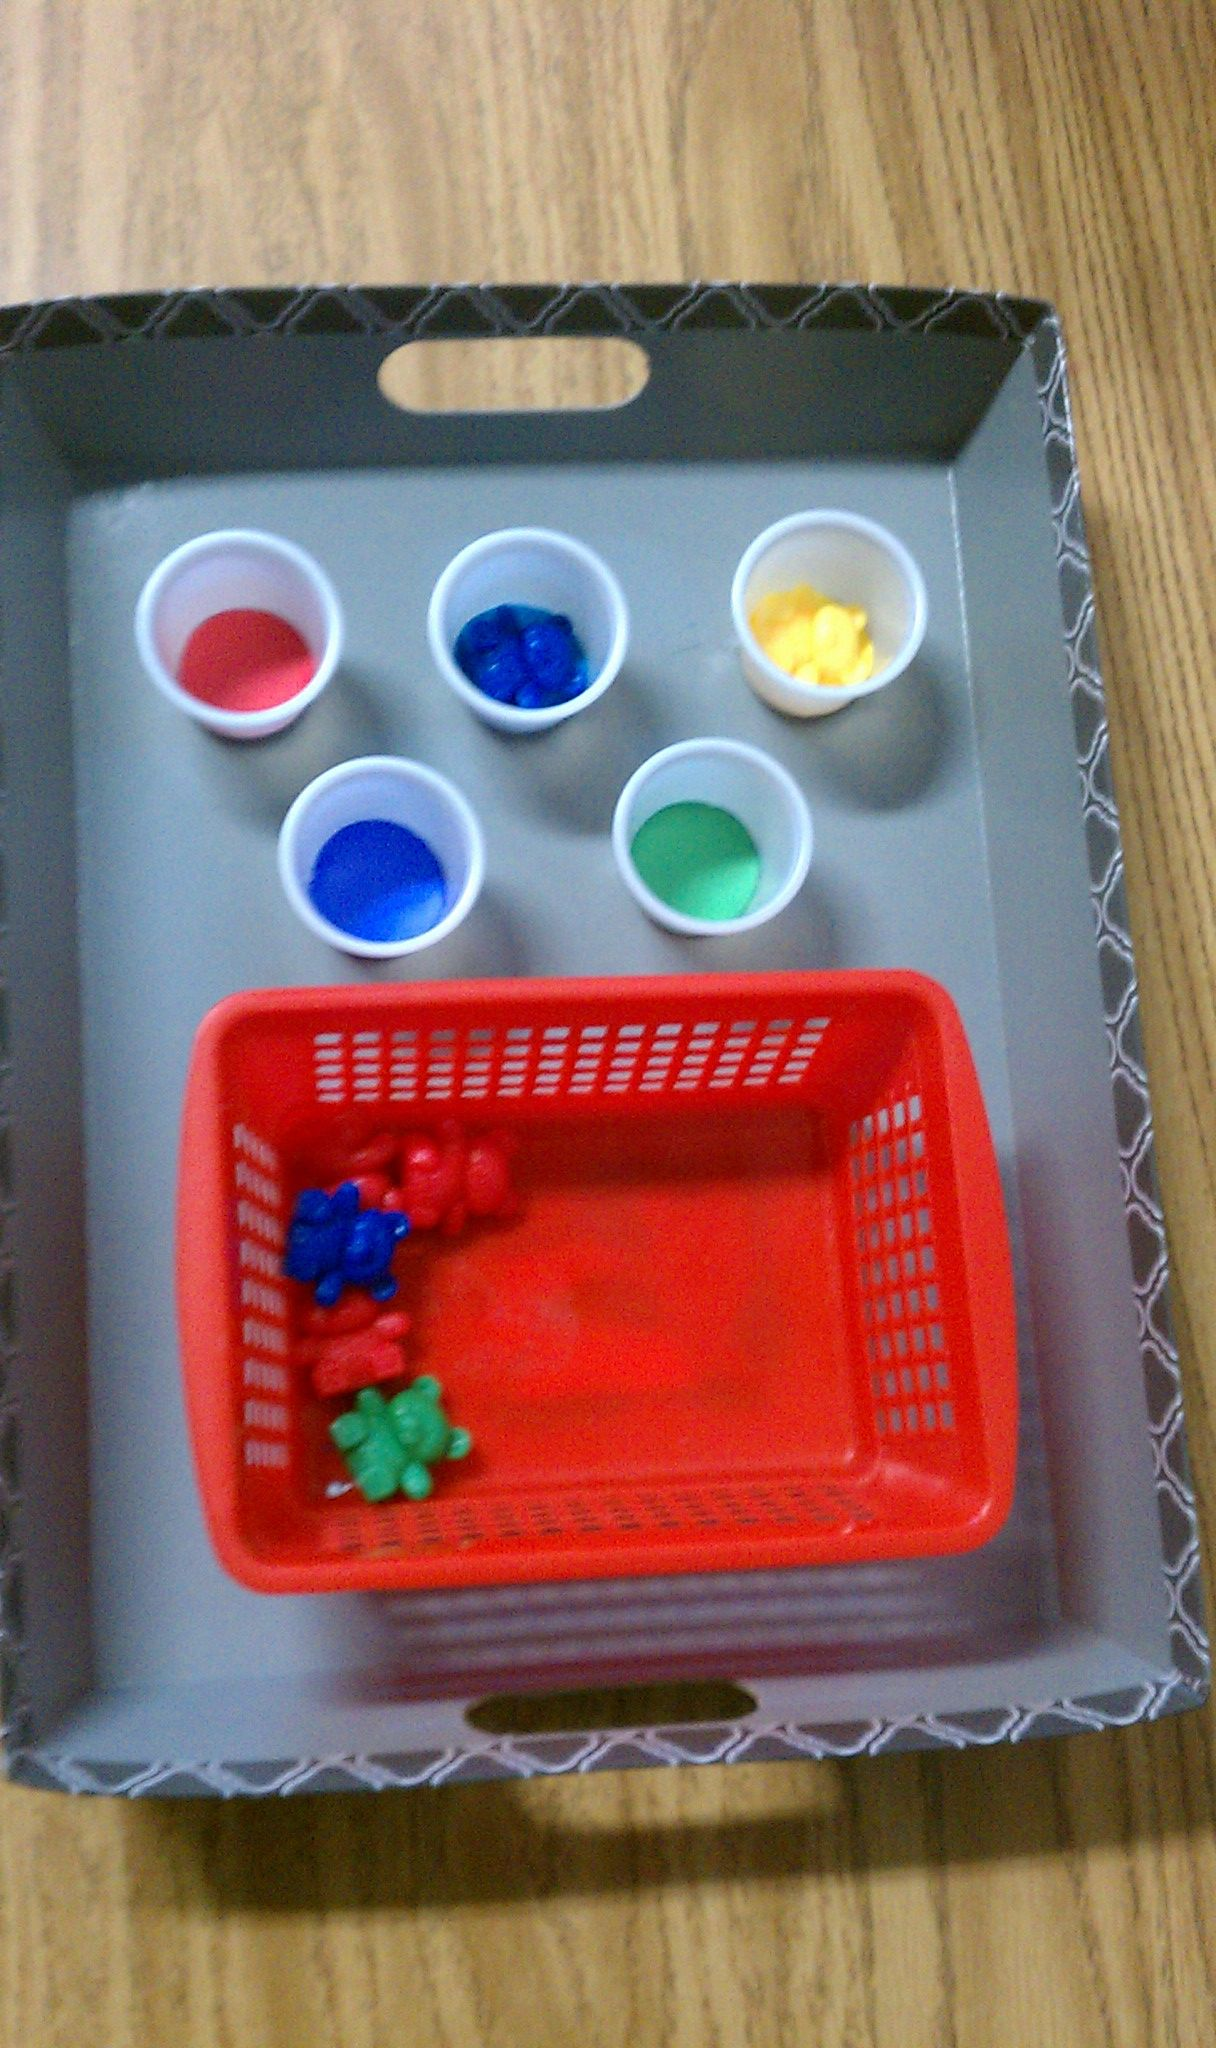 sorting colors: DYI- small cups with colored construction paper inserts glued to cardboard tray (found at dollar store)- colored bears or other small items